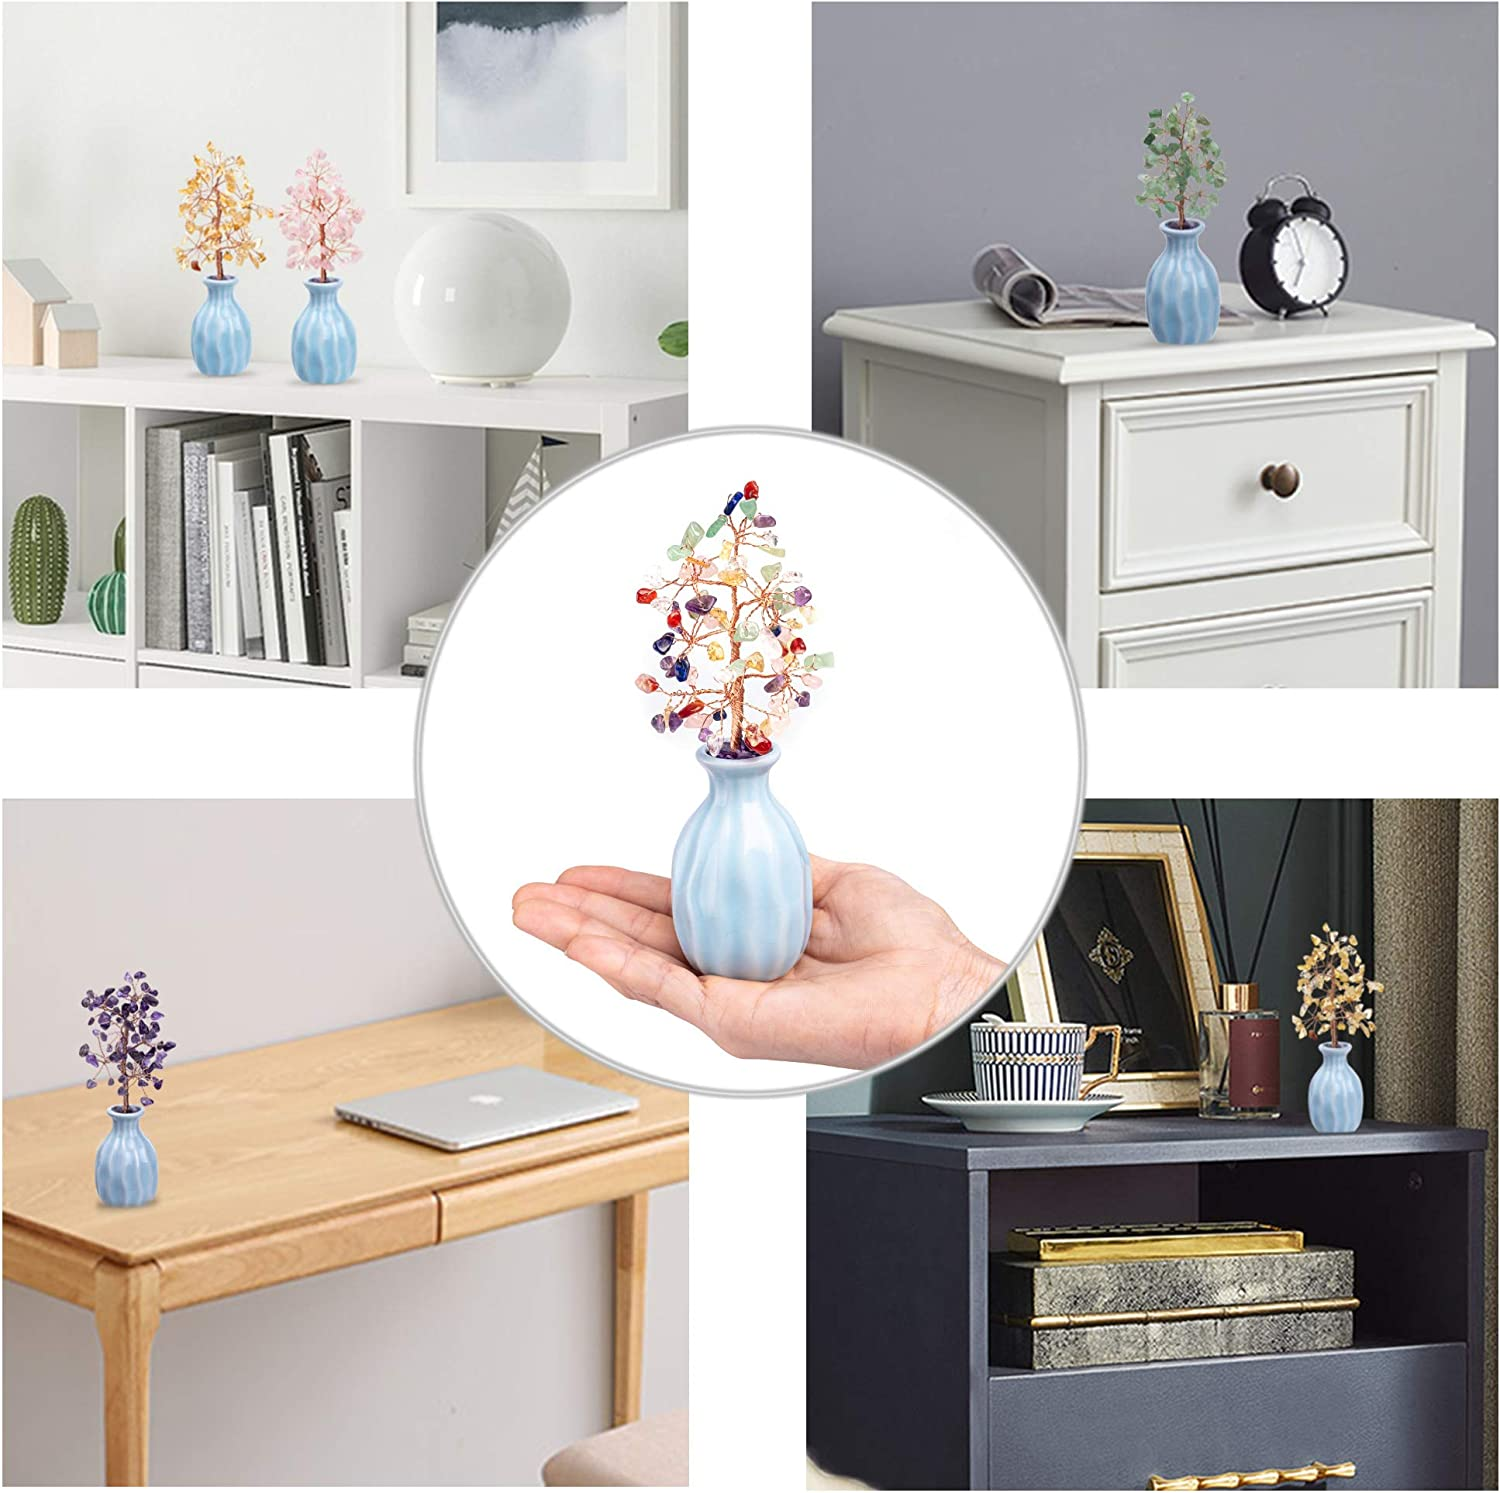 UFEEL Natural Citrine Chakra Healing Crystal Tree of Life Handmade Gemstones Copper Money Tree Wrapped On Blue Ceramics Vase for Home Office Table Decor Feng Shui Luck Figurine